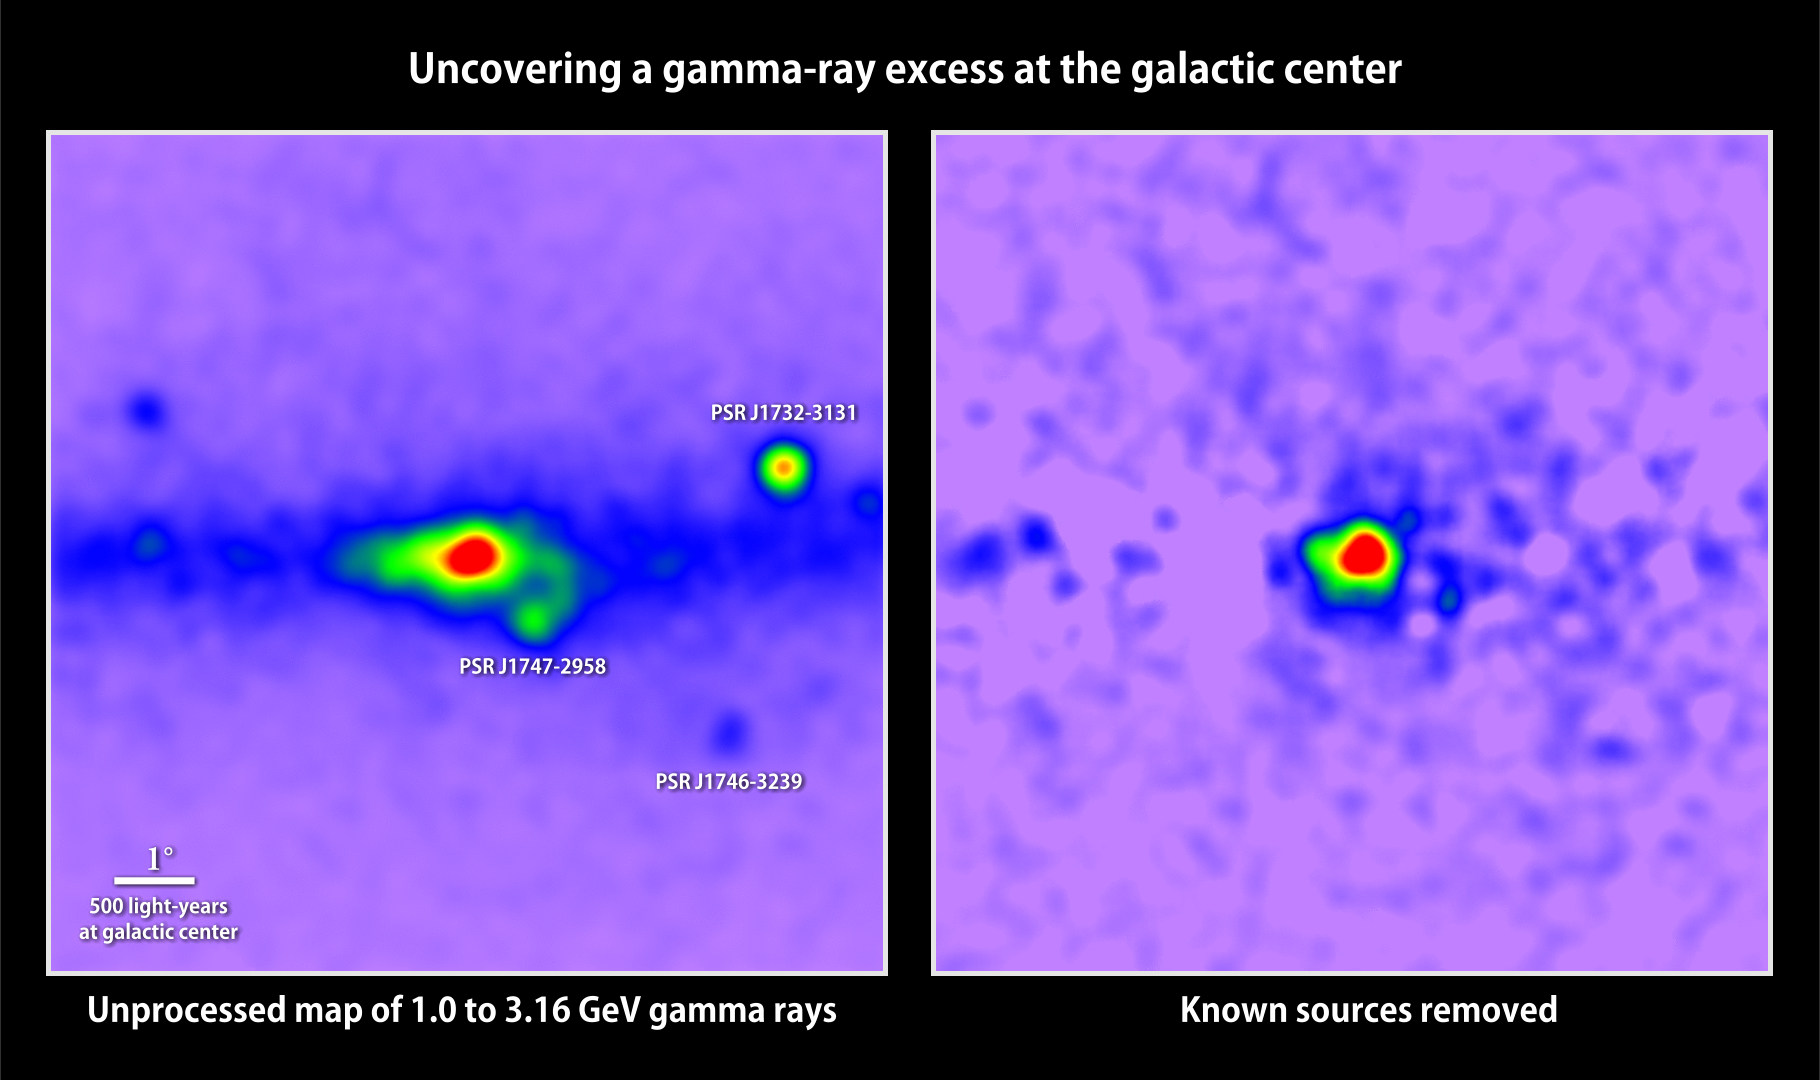 http://www.techtimes.com/articles/5270/20140406/fermi-gamma-ray-telescope-may-show-evidence-of-dark-matter-in-milky-way.htm